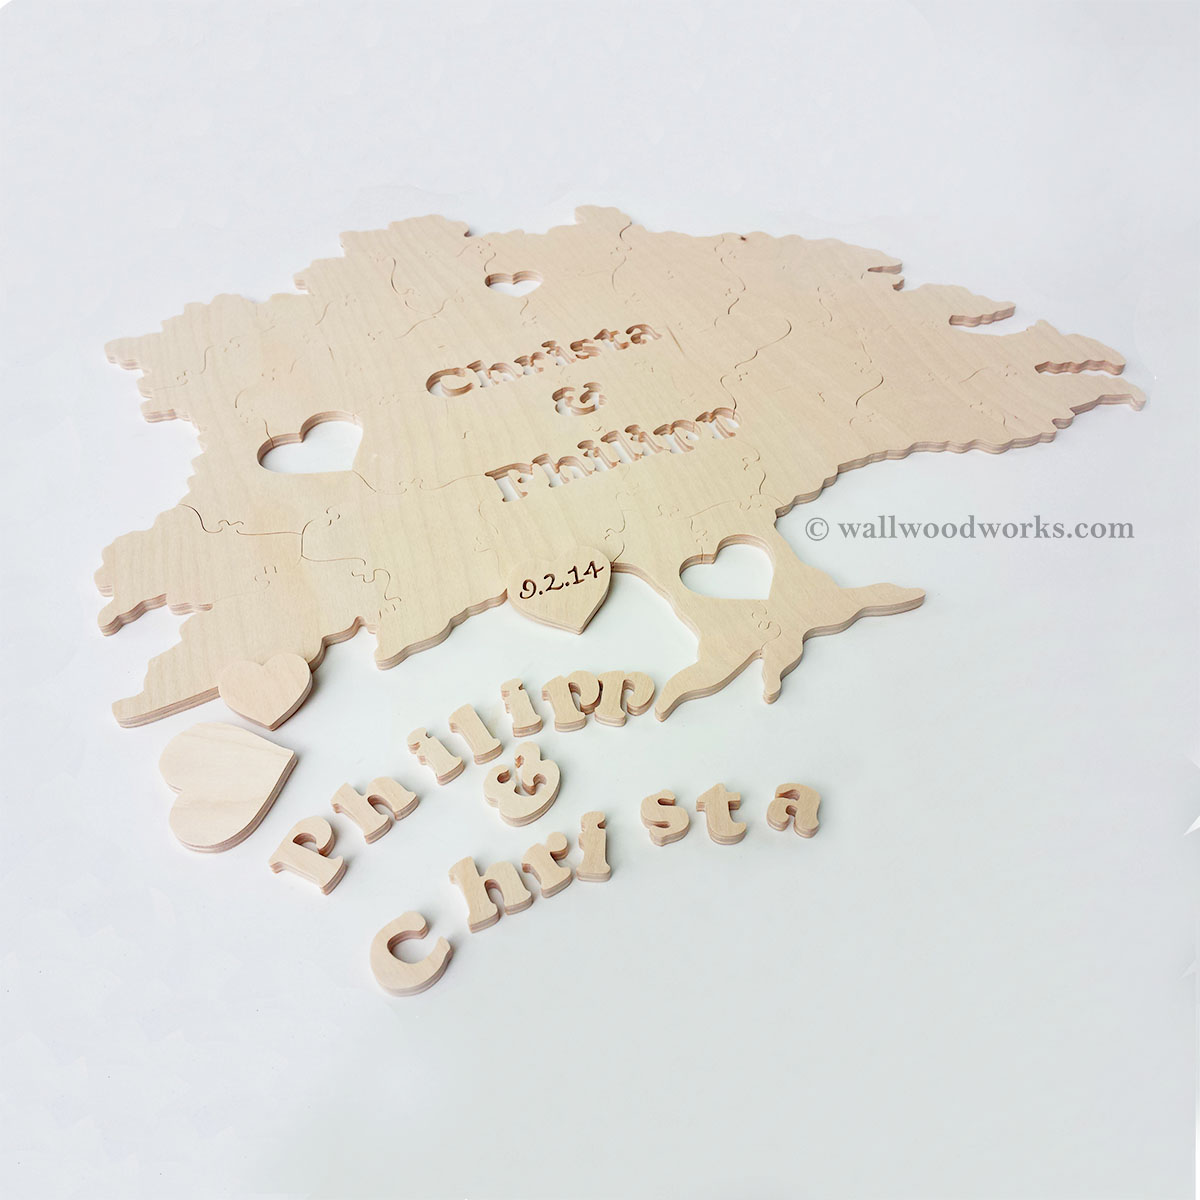 Tree Wedding Guest Book Puzzle Wall Woodworks Company